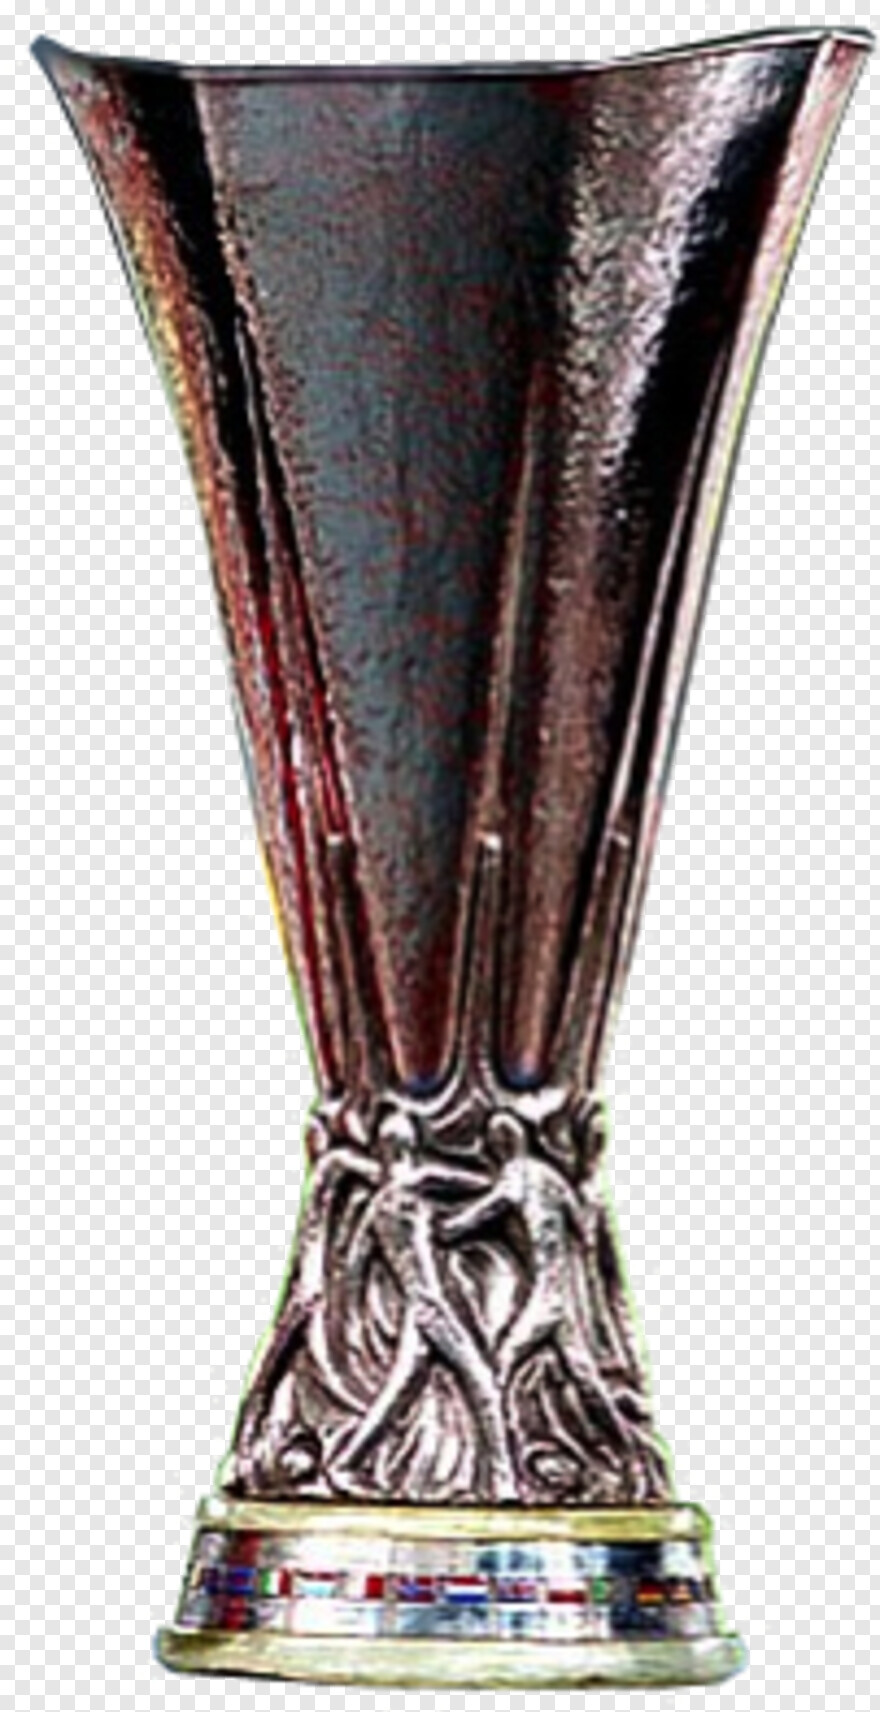 Download Europa League Trophy Png